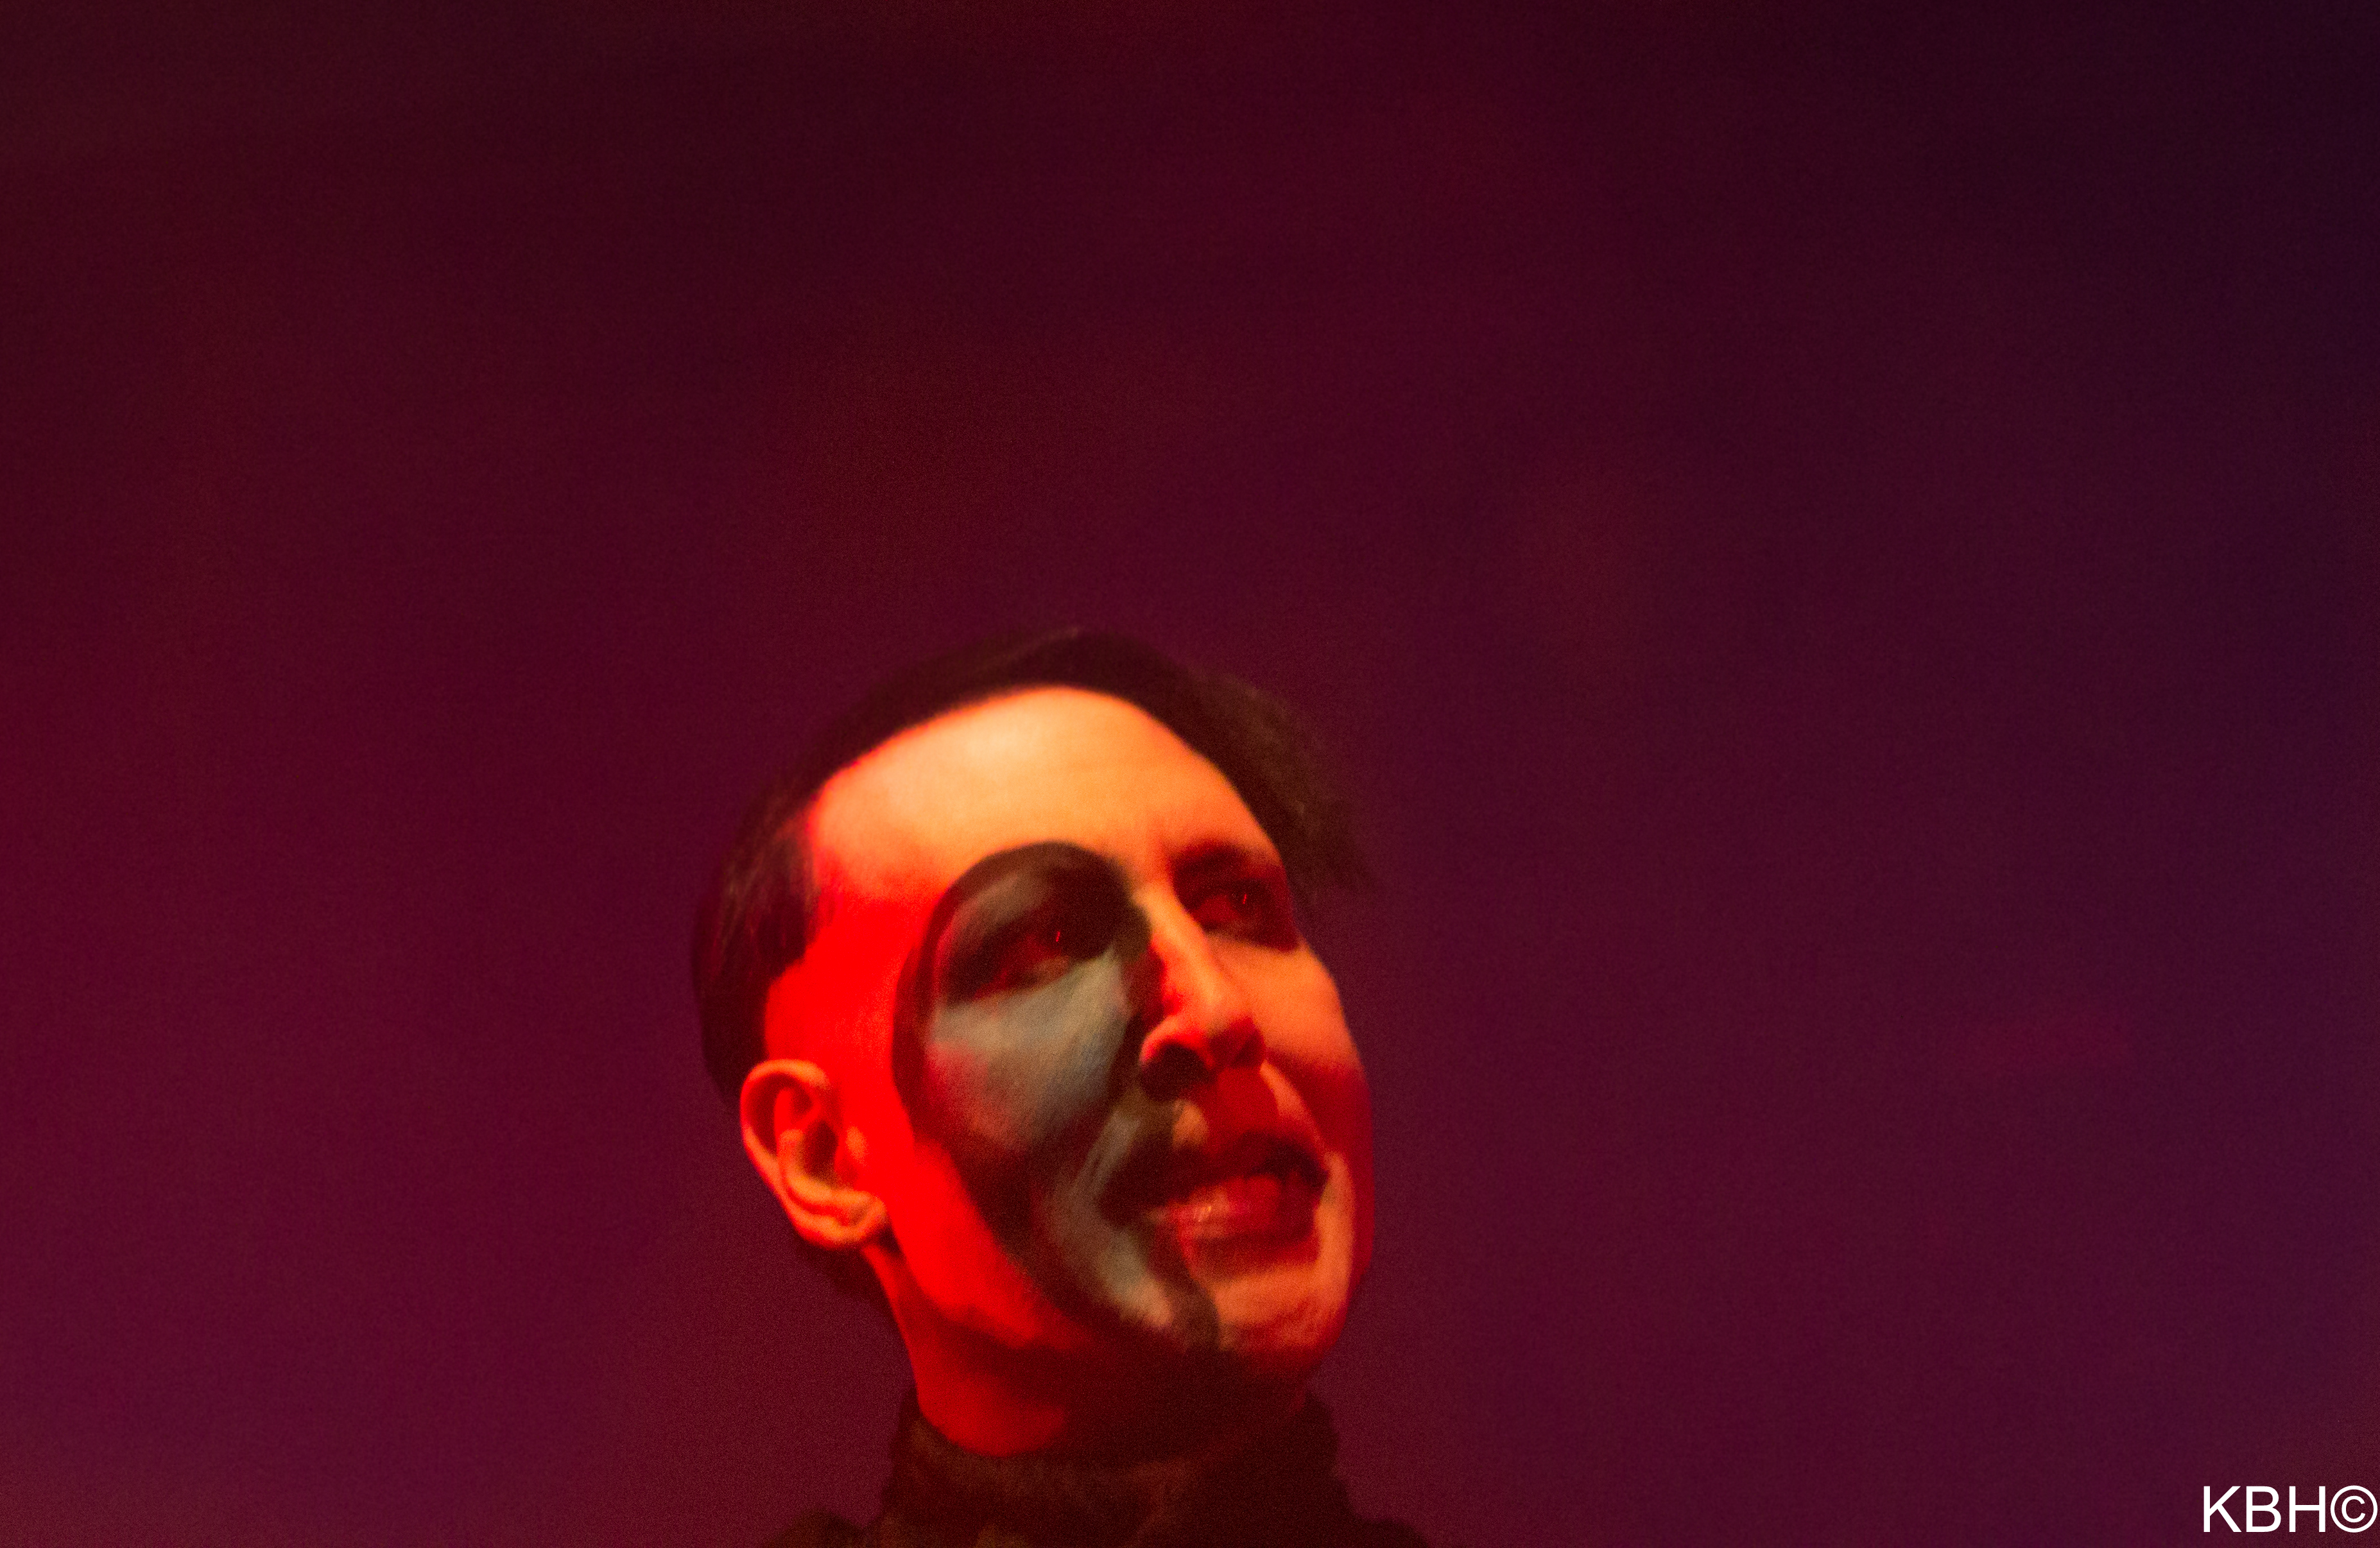 Marilyn Manson Iron City Birmingham, AL 4/26/15